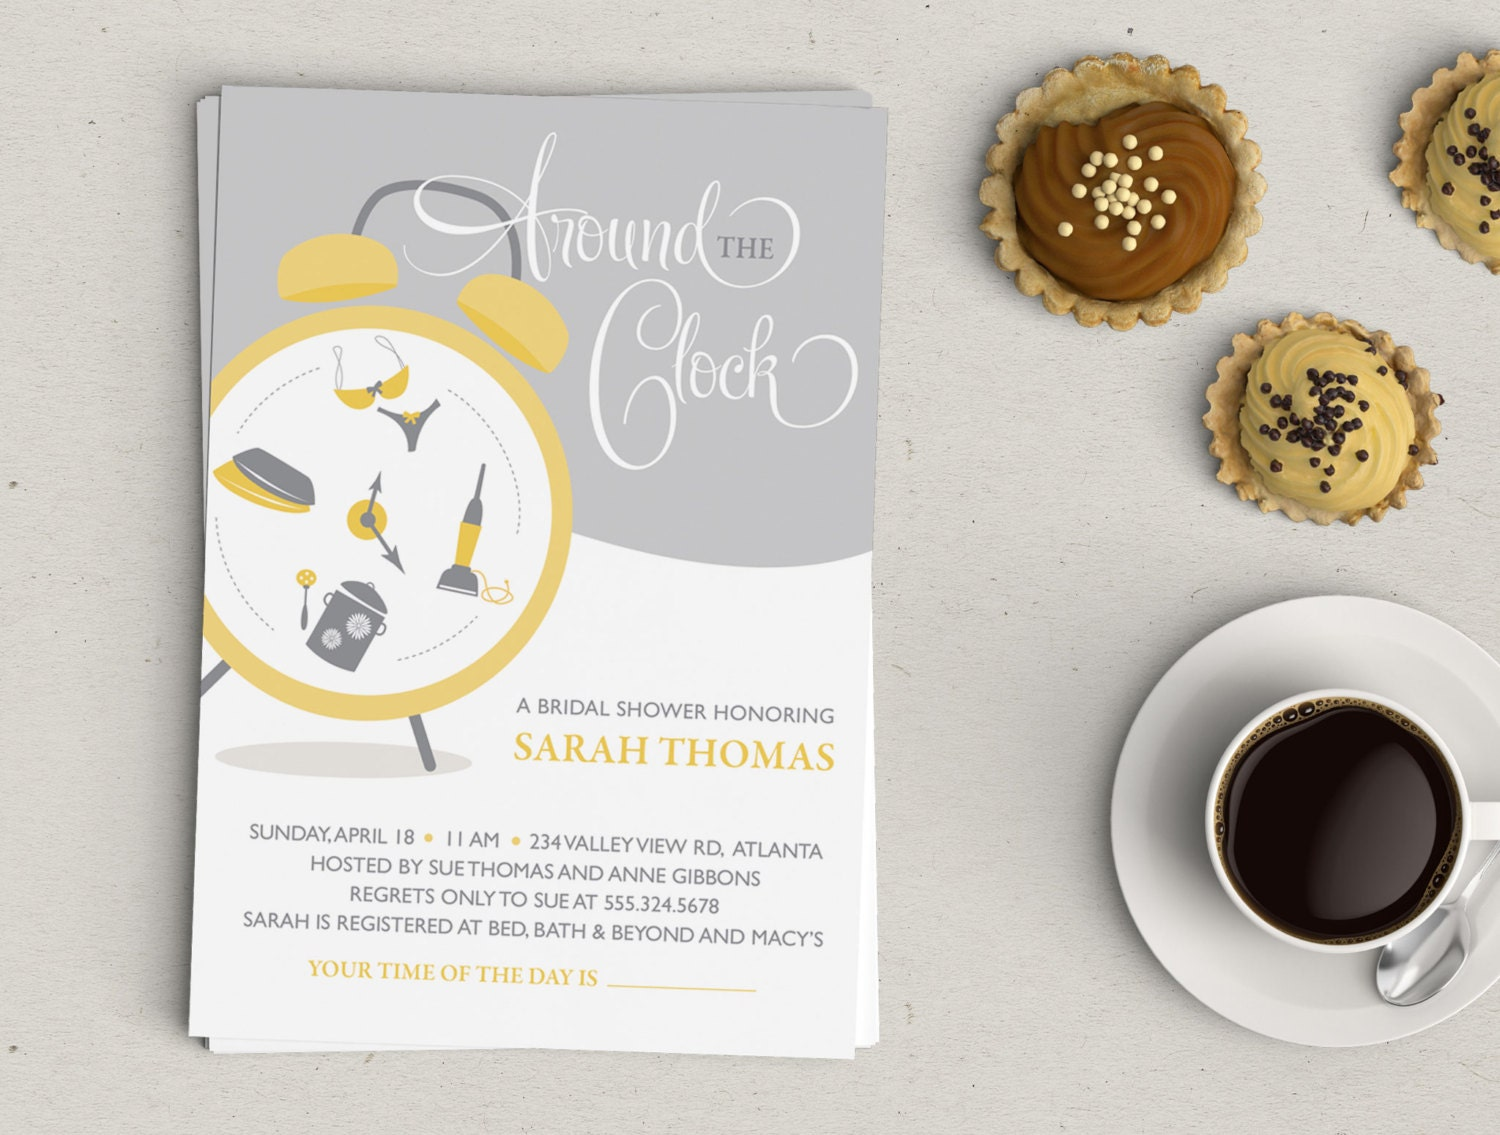 around the clock wedding shower invitation - Picture Ideas References